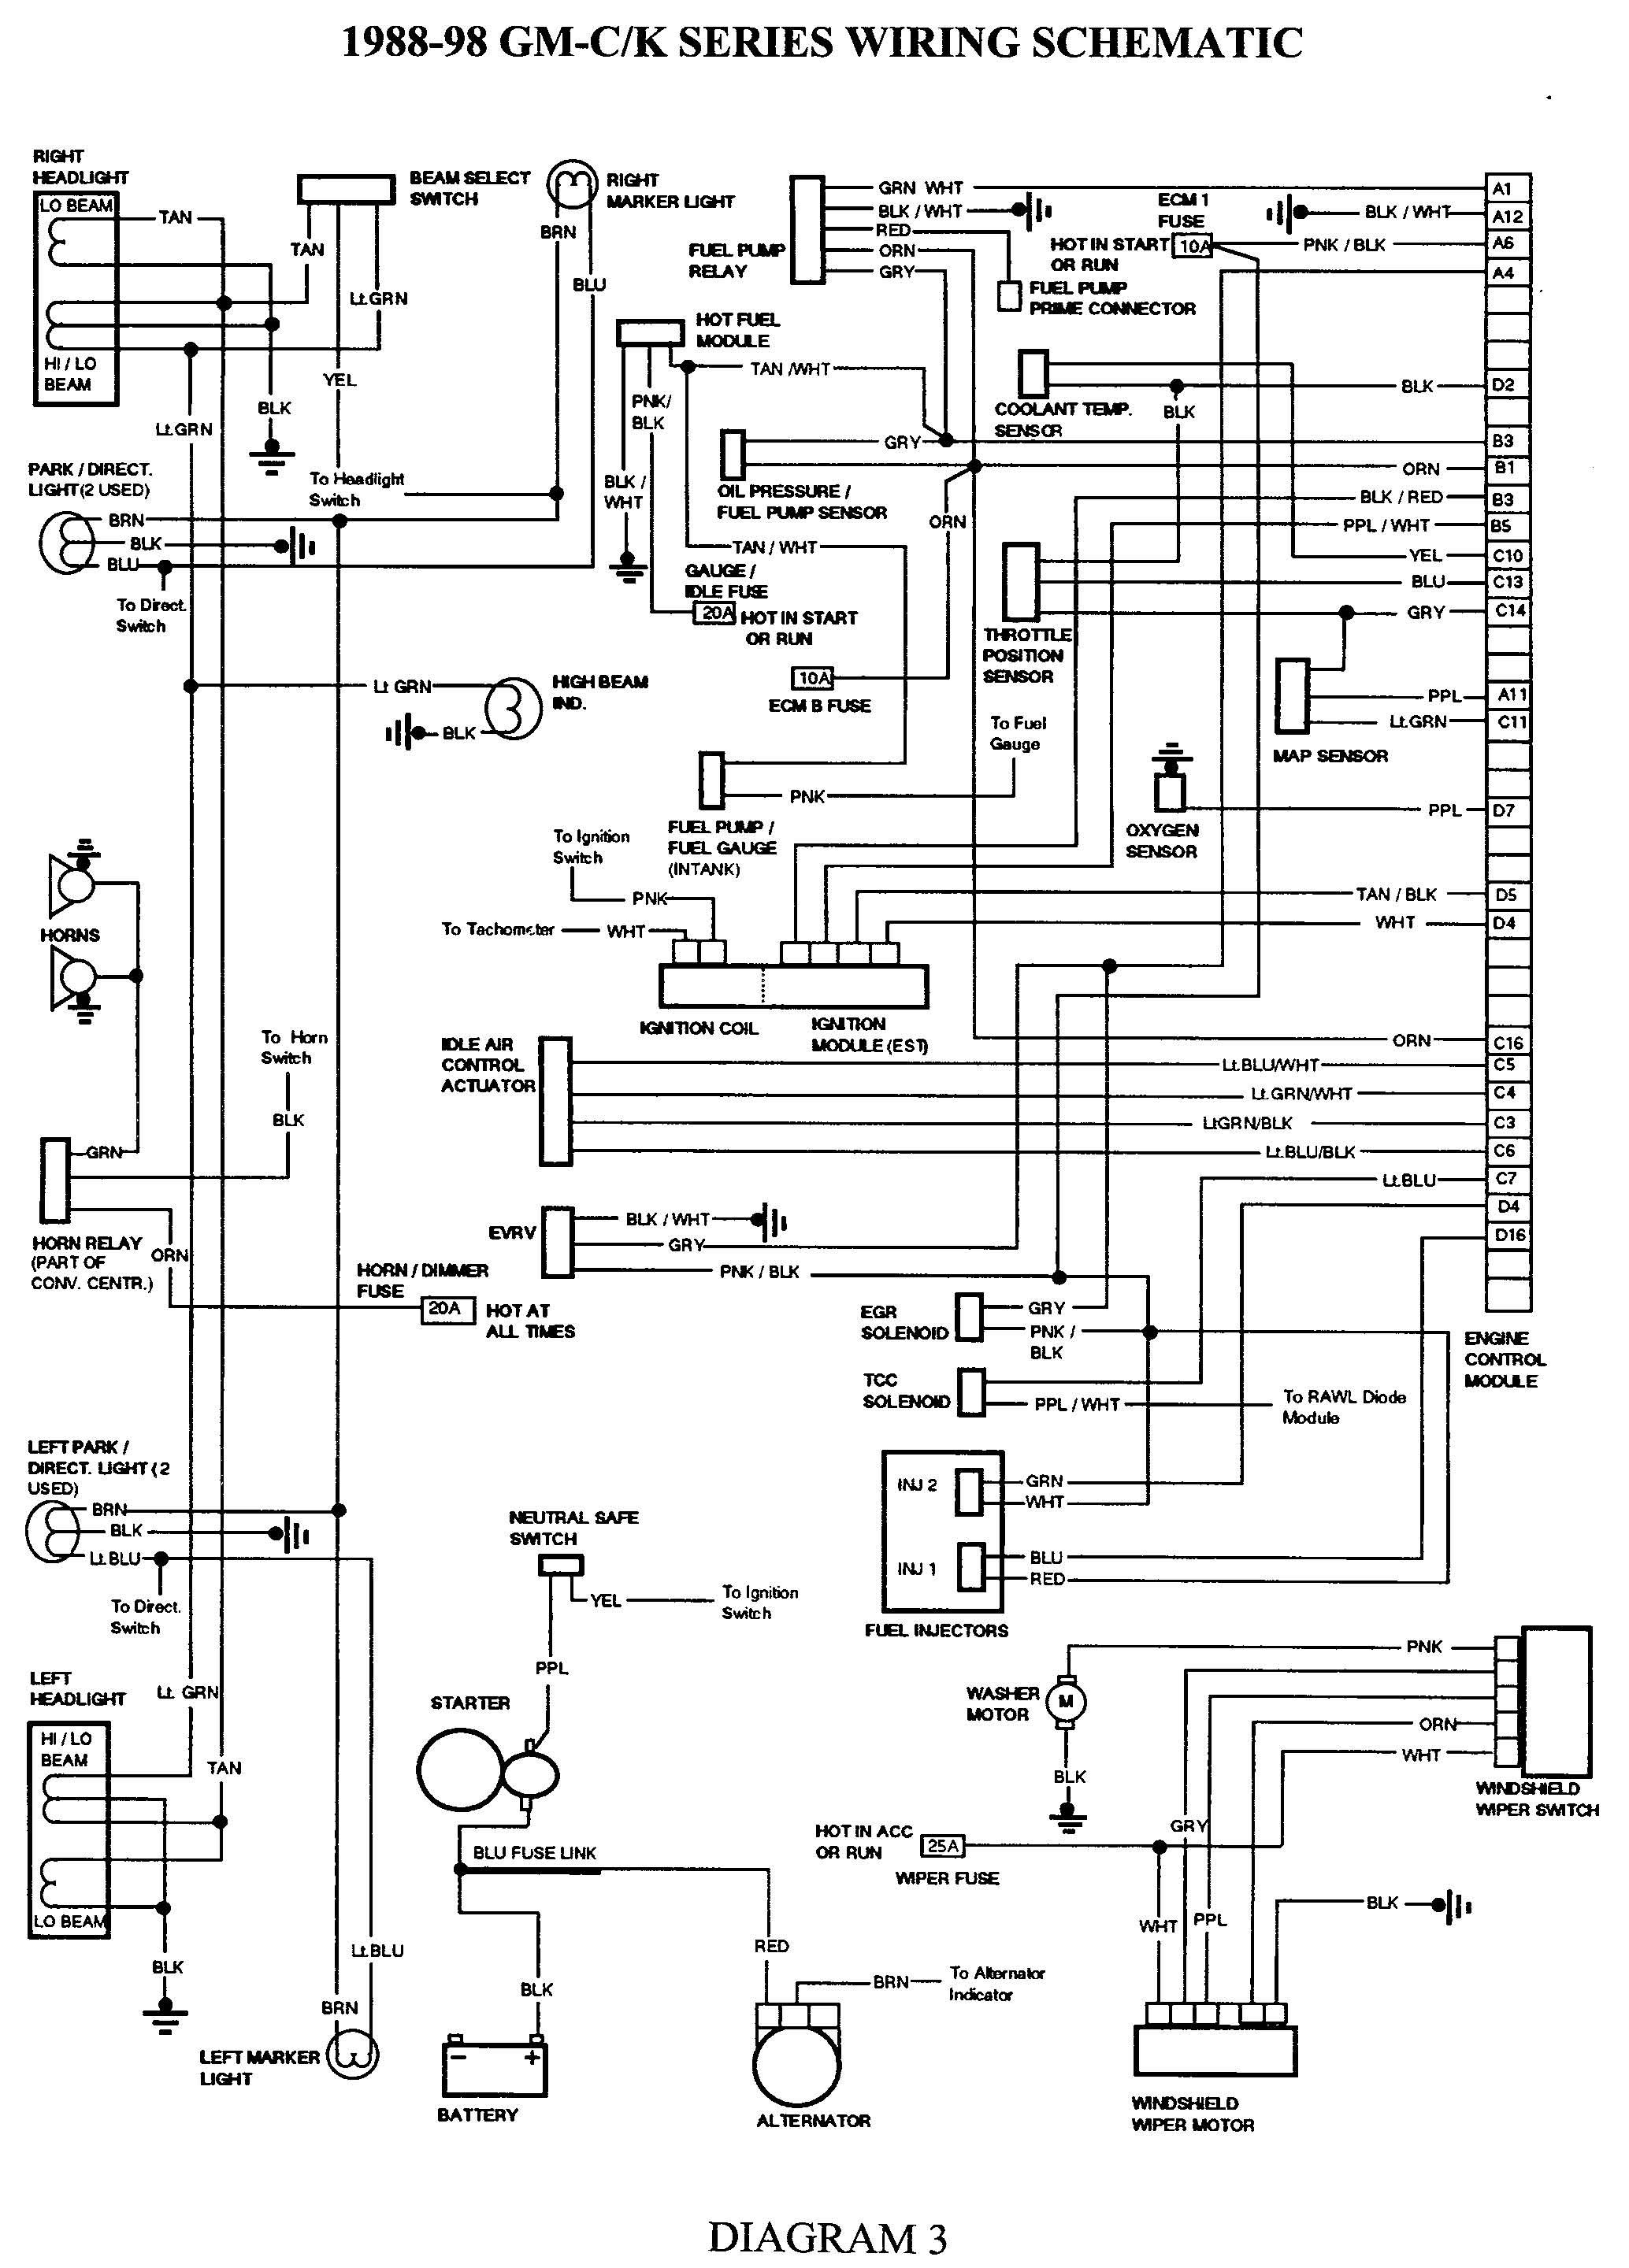 b2f2e5dbdc07dada83ef514f6d4ce3d4 wiring diagram for 1998 chevy silverado google search 98 chevy Chevy Truck Wiring Harness Diagram at gsmx.co